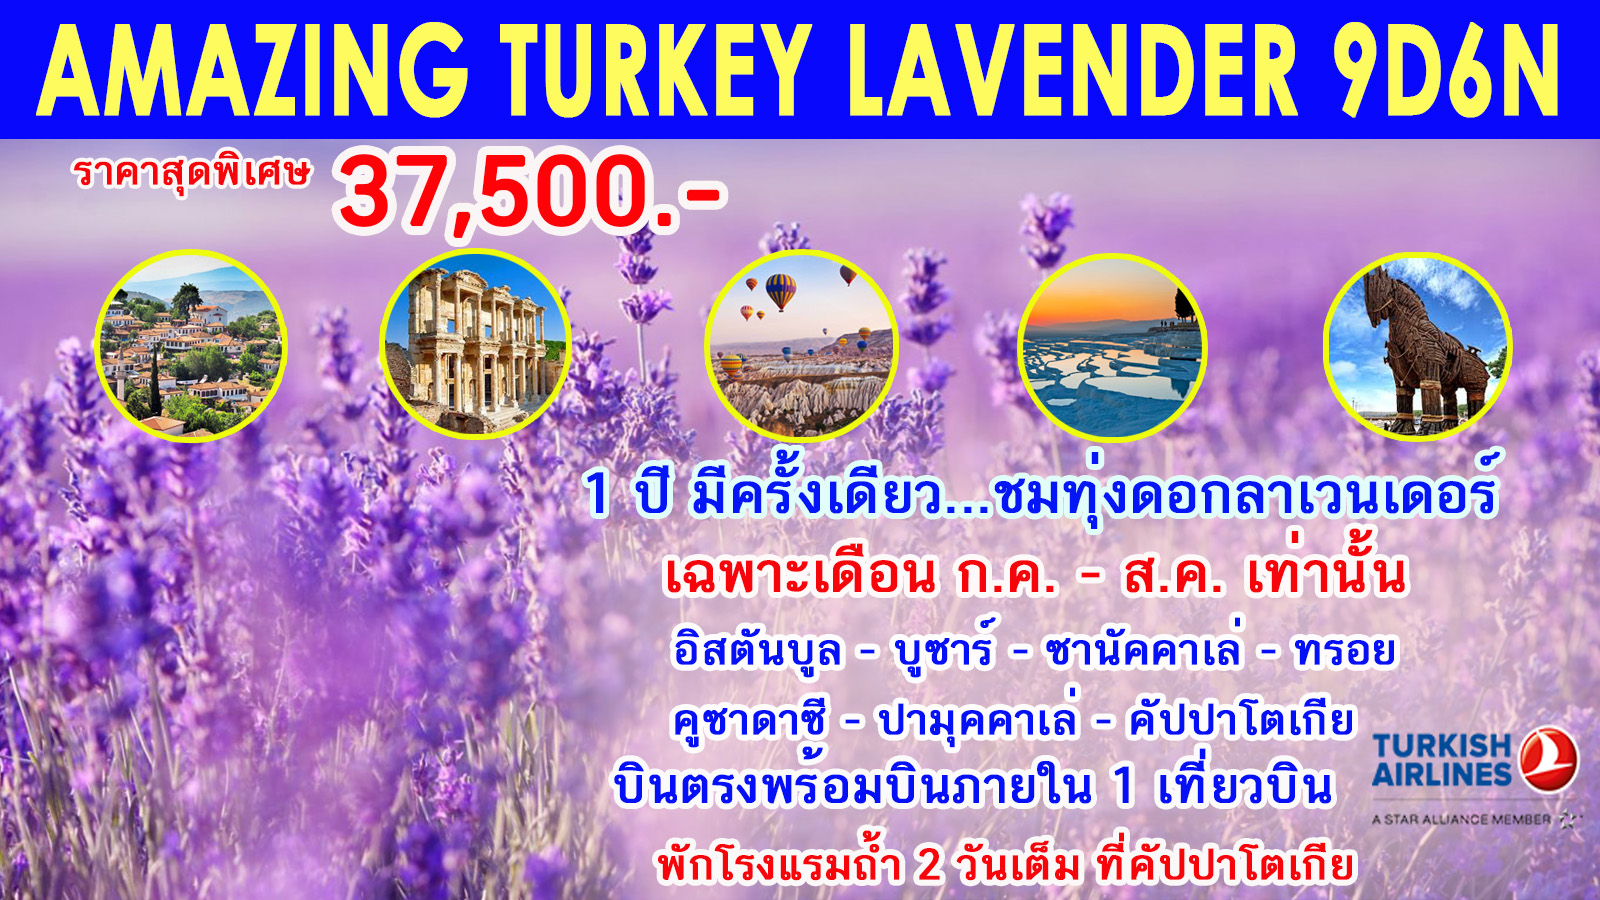 ทัวร์ตรุกี-Amazing-Turkey-Lavender-9D6N-(JUL-AUG20)